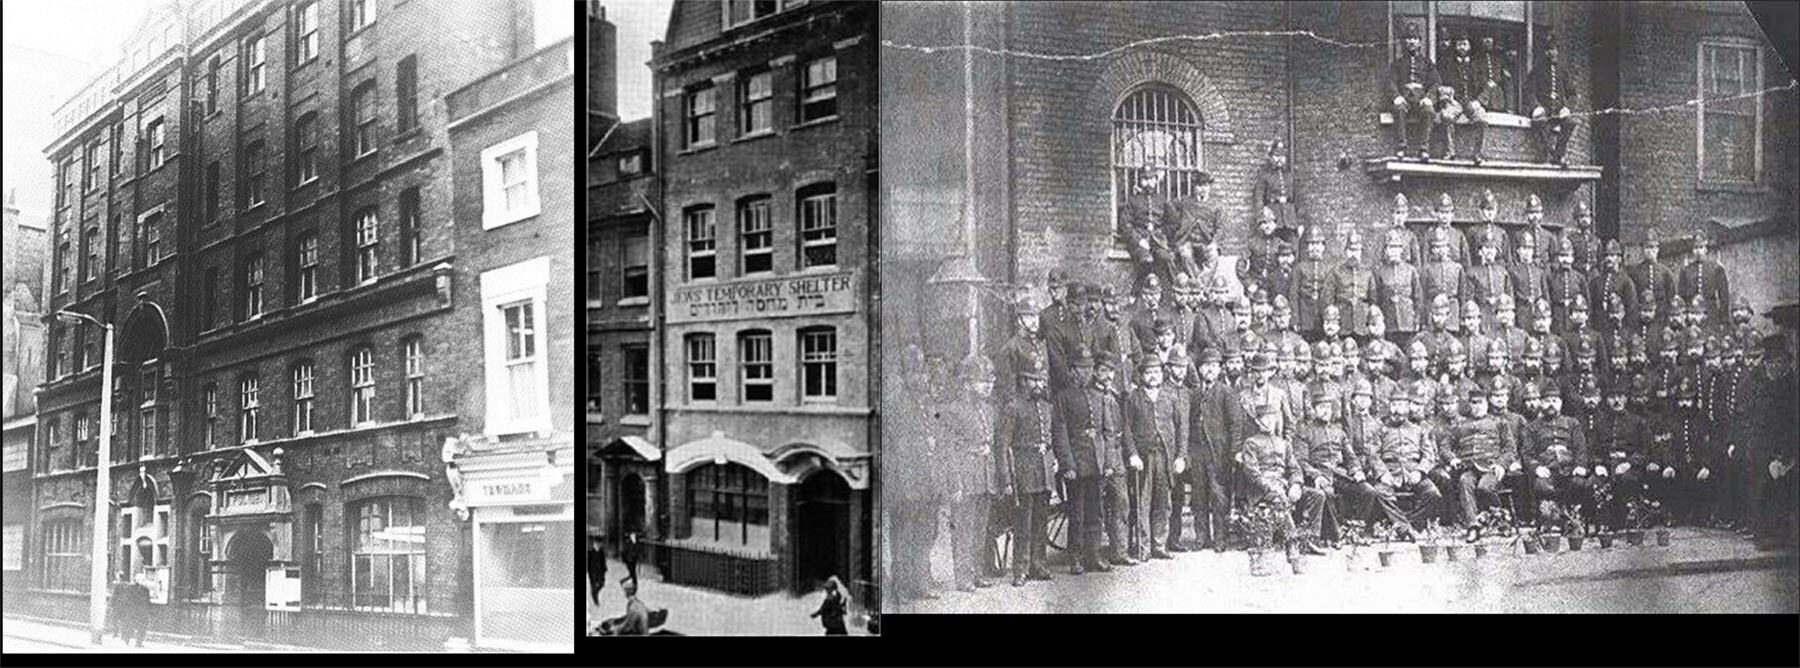 1: The only extant photo of the building used by the police investigating the Ripper case. 2: A photograph of a nearby building important to the setting. 3: The back of the station, the force posing with flowers(!)